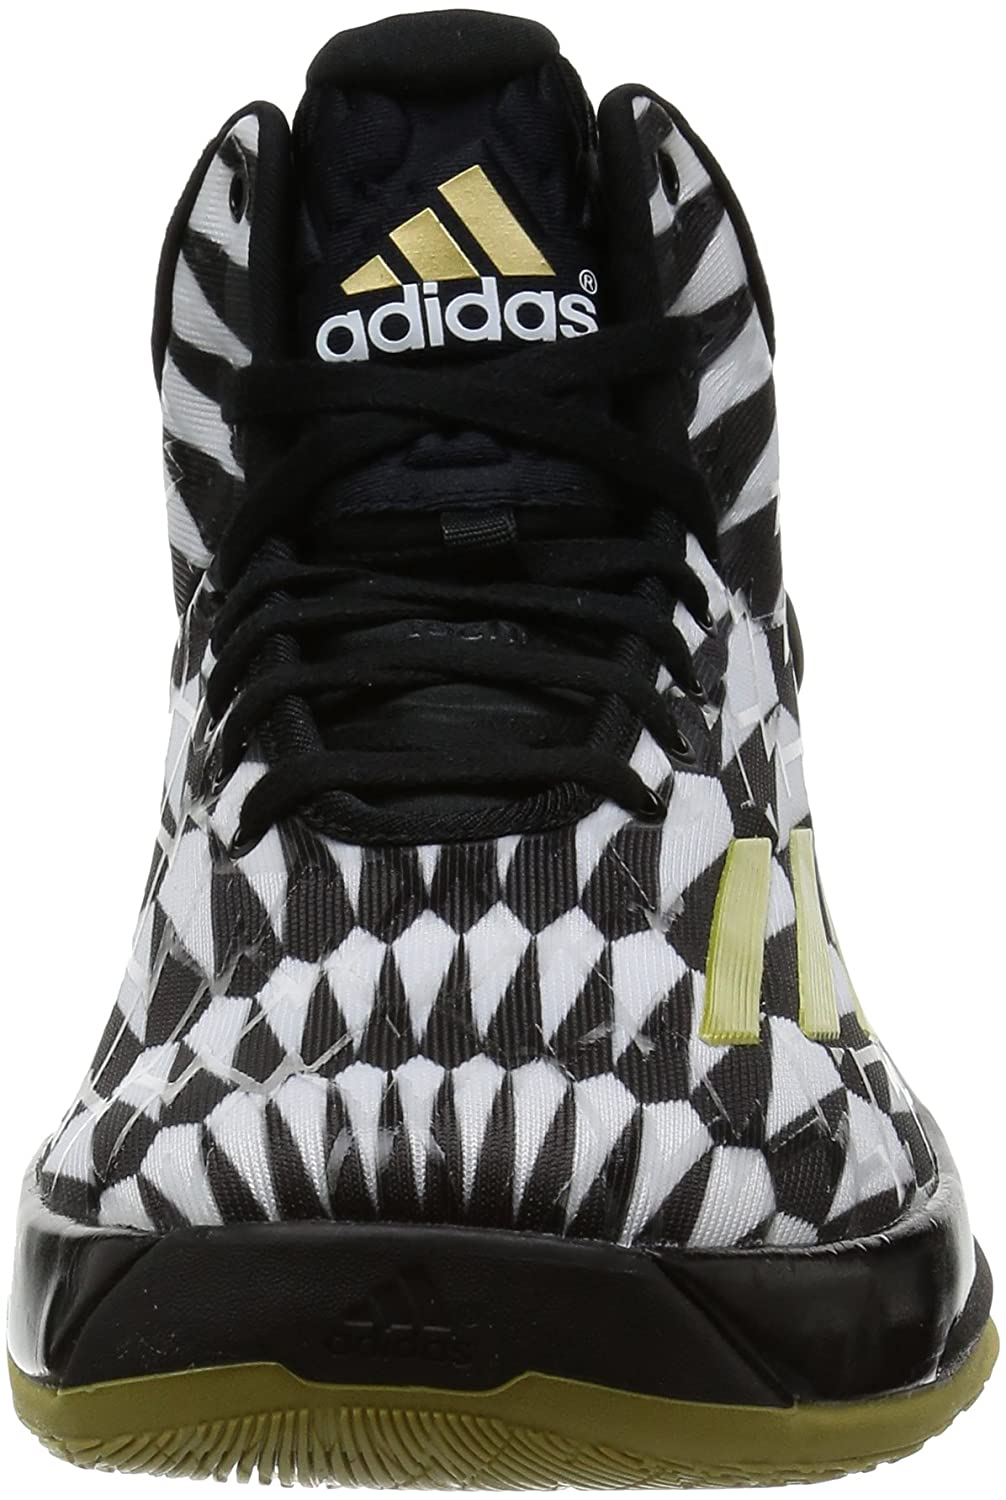 ADIDAS PERFORMANCE PERFORMANCE PERFORMANCE Crazy Light Boost 22a1e6